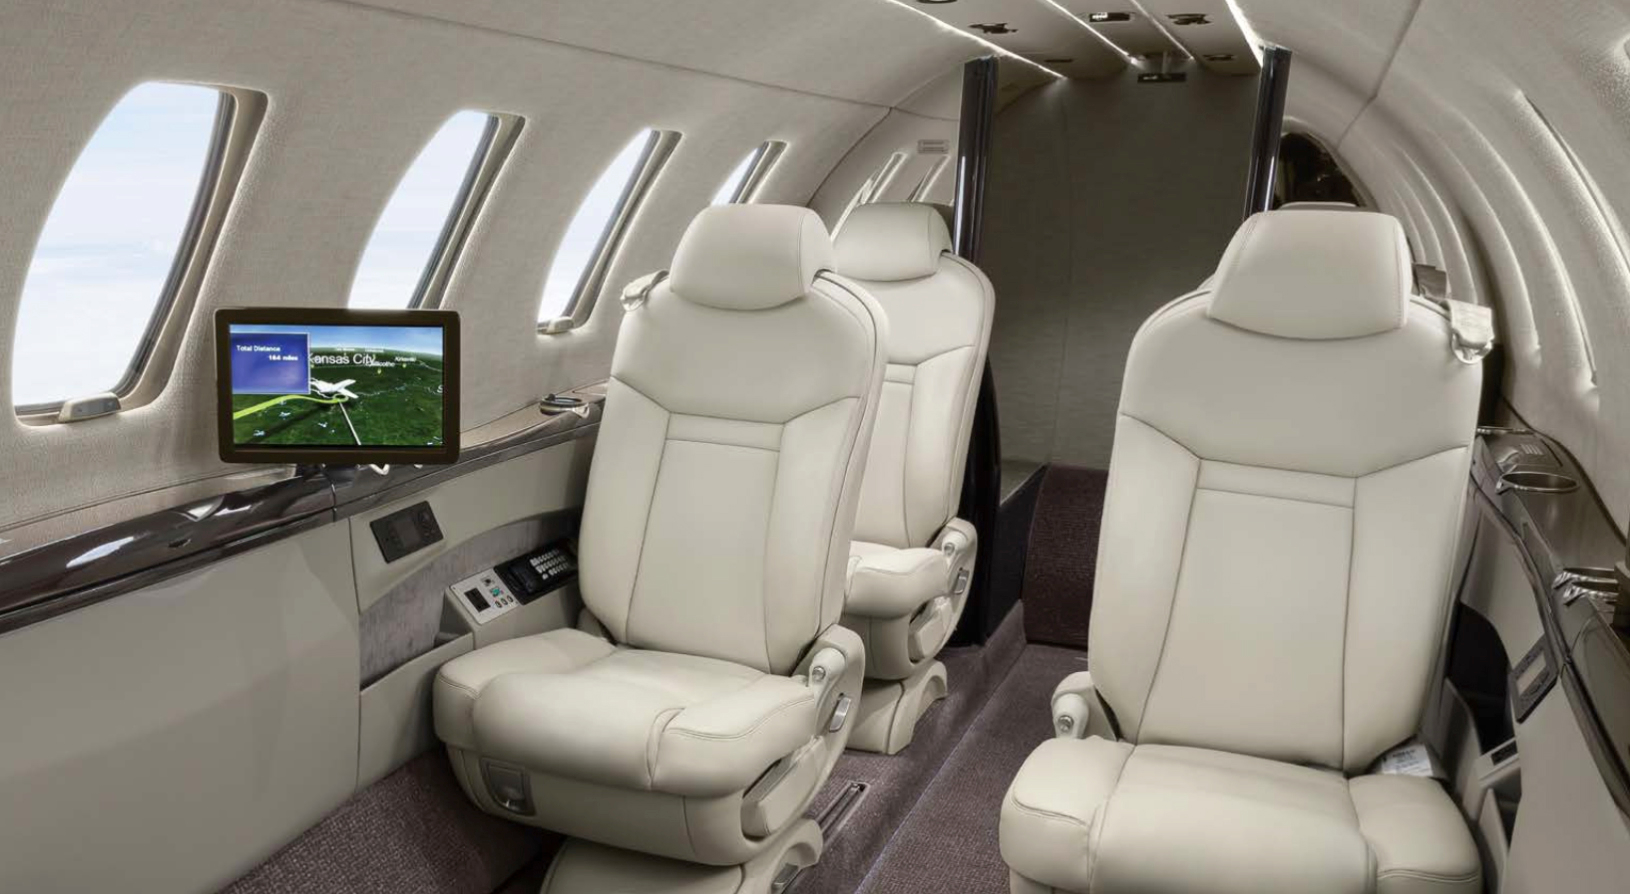 FlyPrivate books private jet plane charters to and from anywhere you need to be including Boston, New York, Chicago, Florida and California.